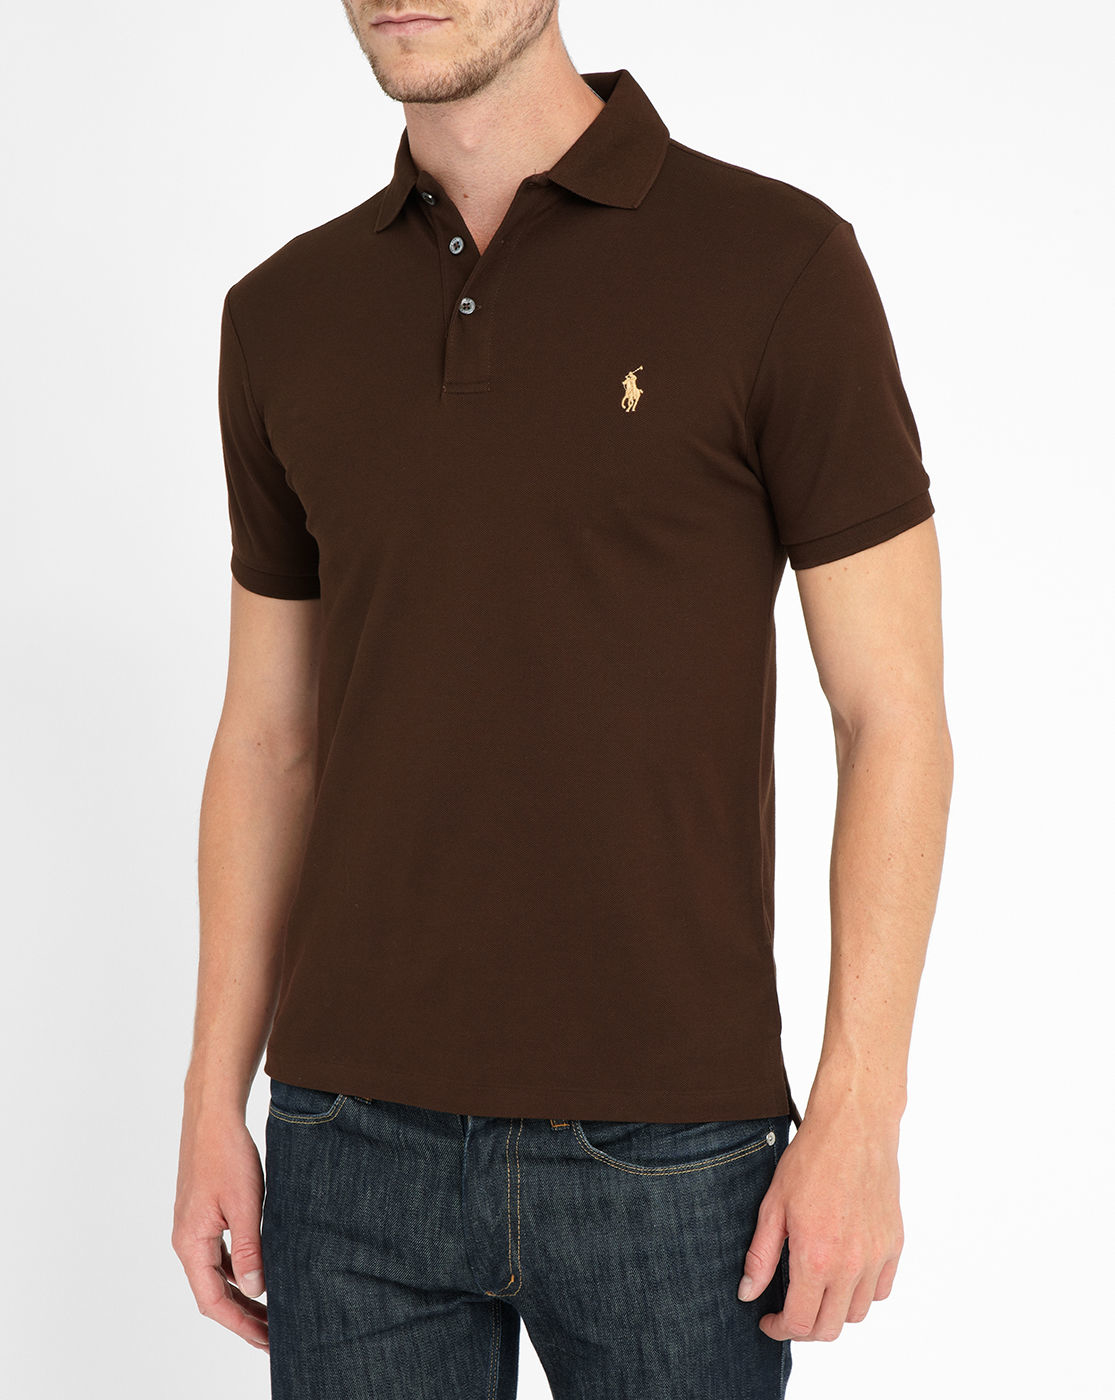 polo ralph lauren chocolate stretch polo shirt in brown for men chocolate lyst. Black Bedroom Furniture Sets. Home Design Ideas